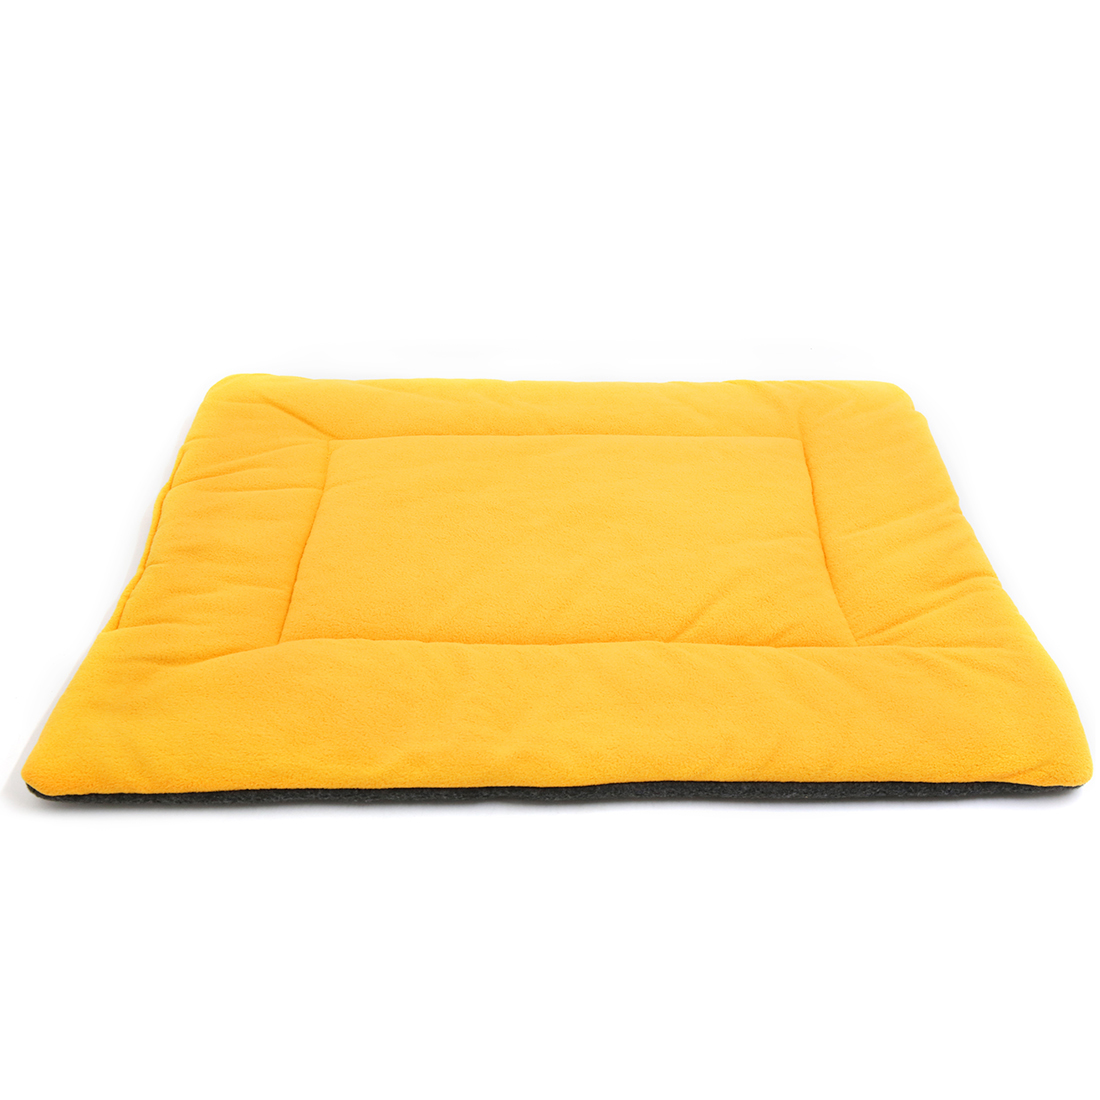 Fleece Reversible Mat Cushion Pad Bed for Dog Cat Puppy Pet Yellow L